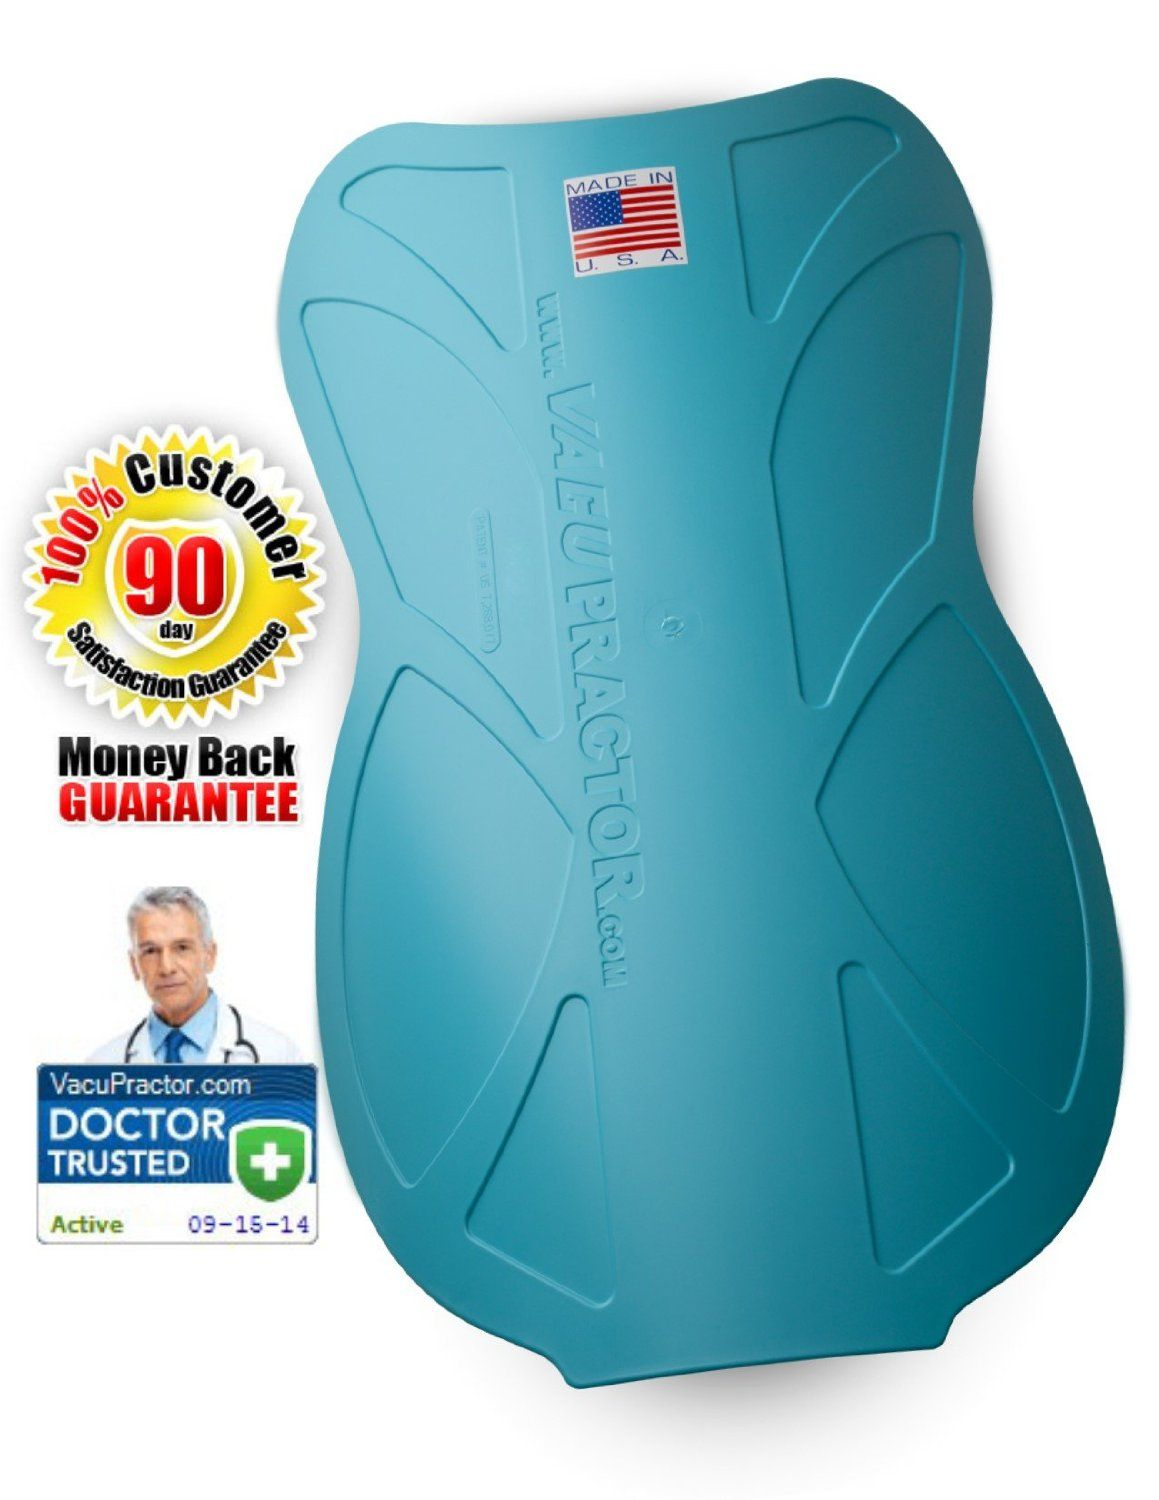 Pin on VacuPractor = Lower Back Pain Relief